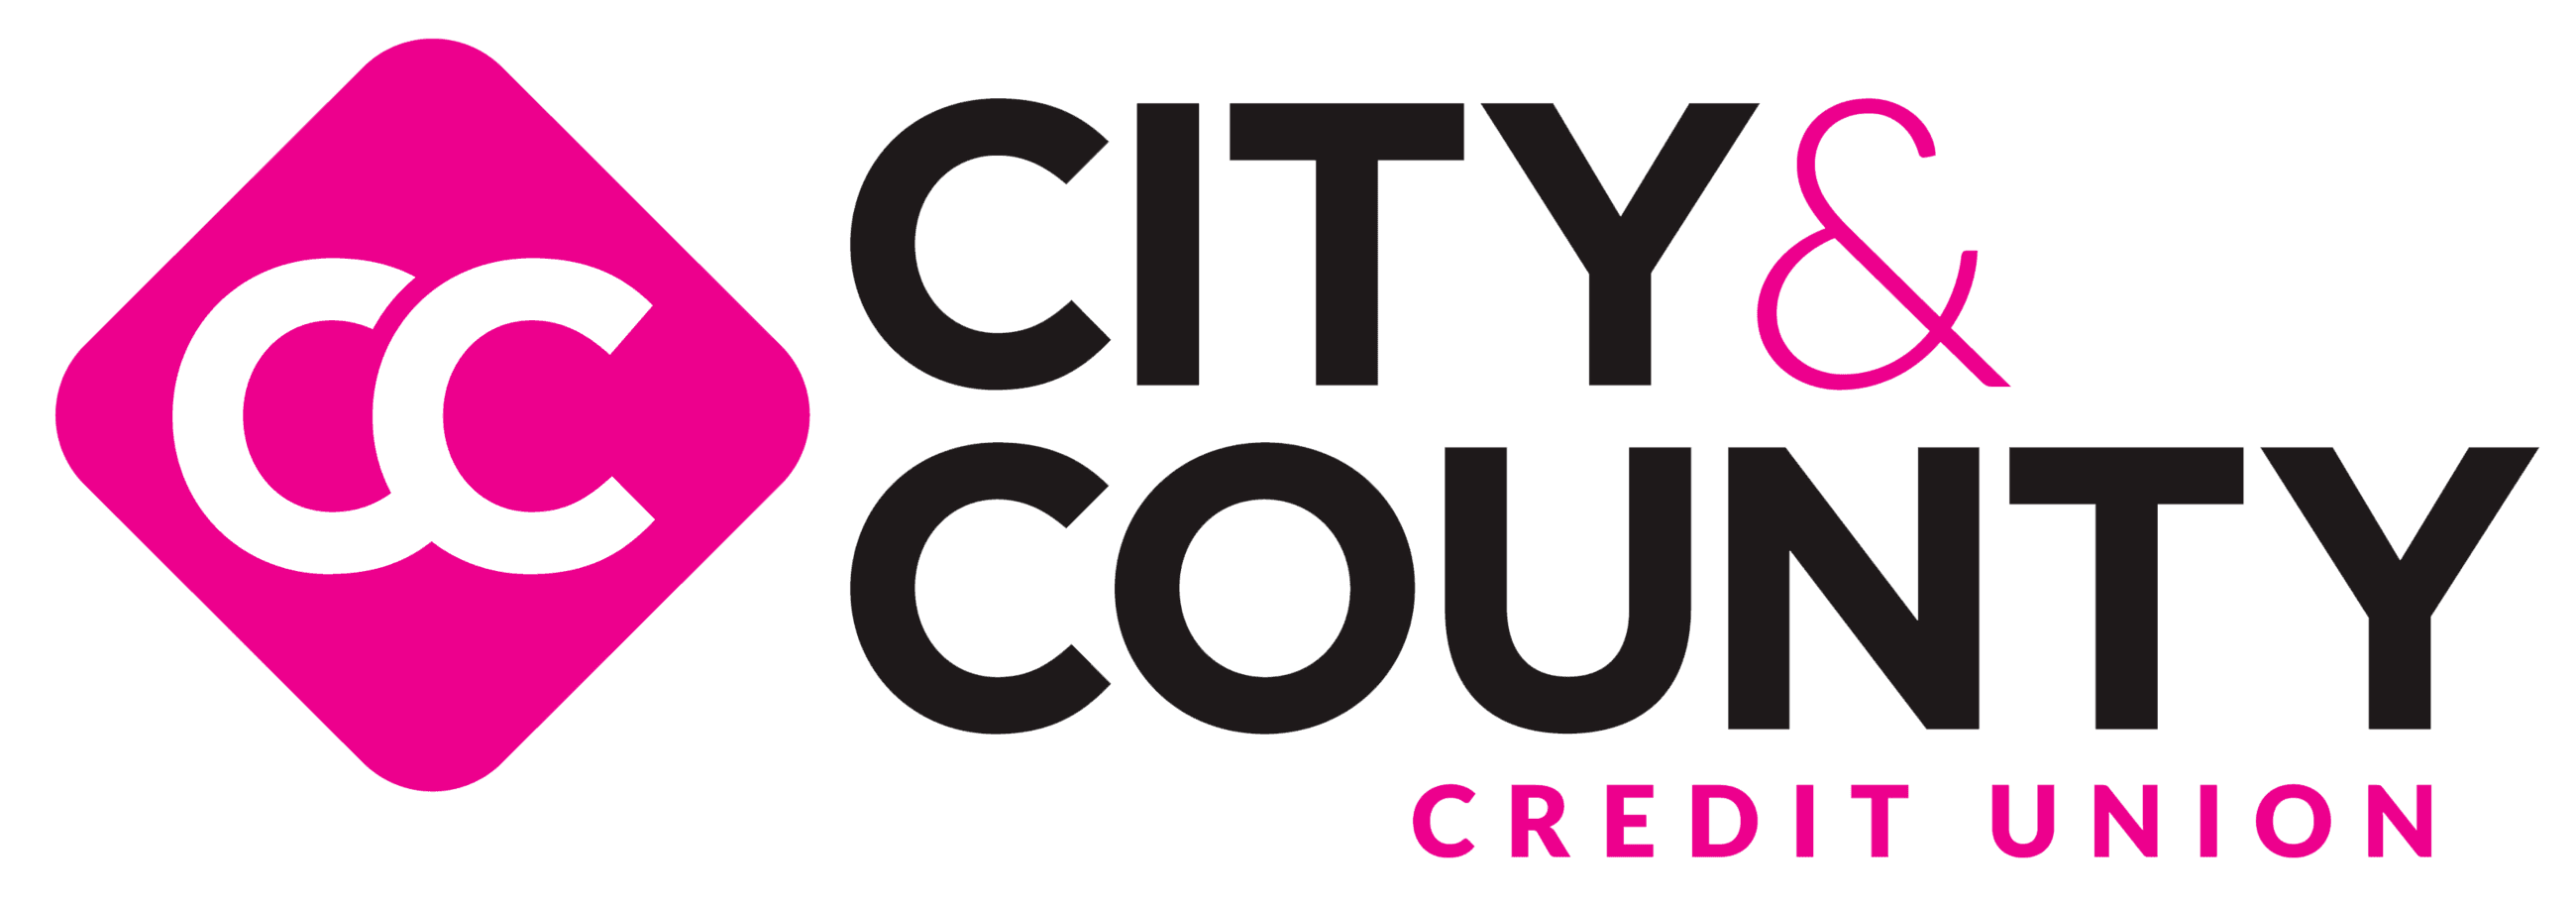 City and County Credit Union